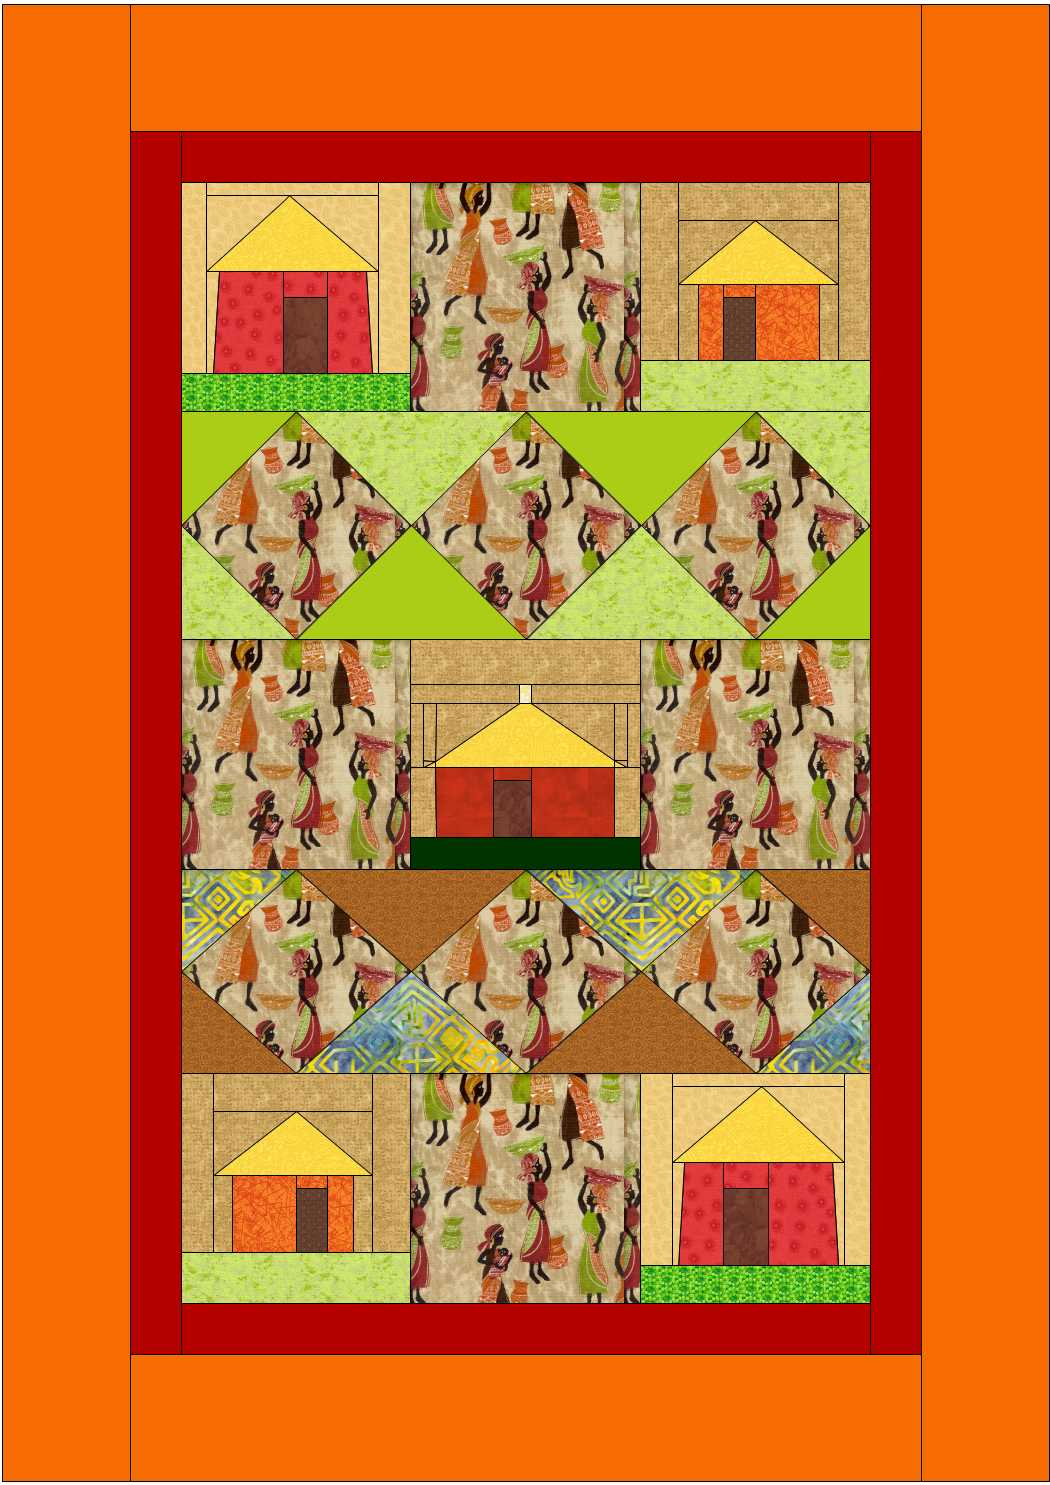 African Village Quilt Design 41 x 58 inches